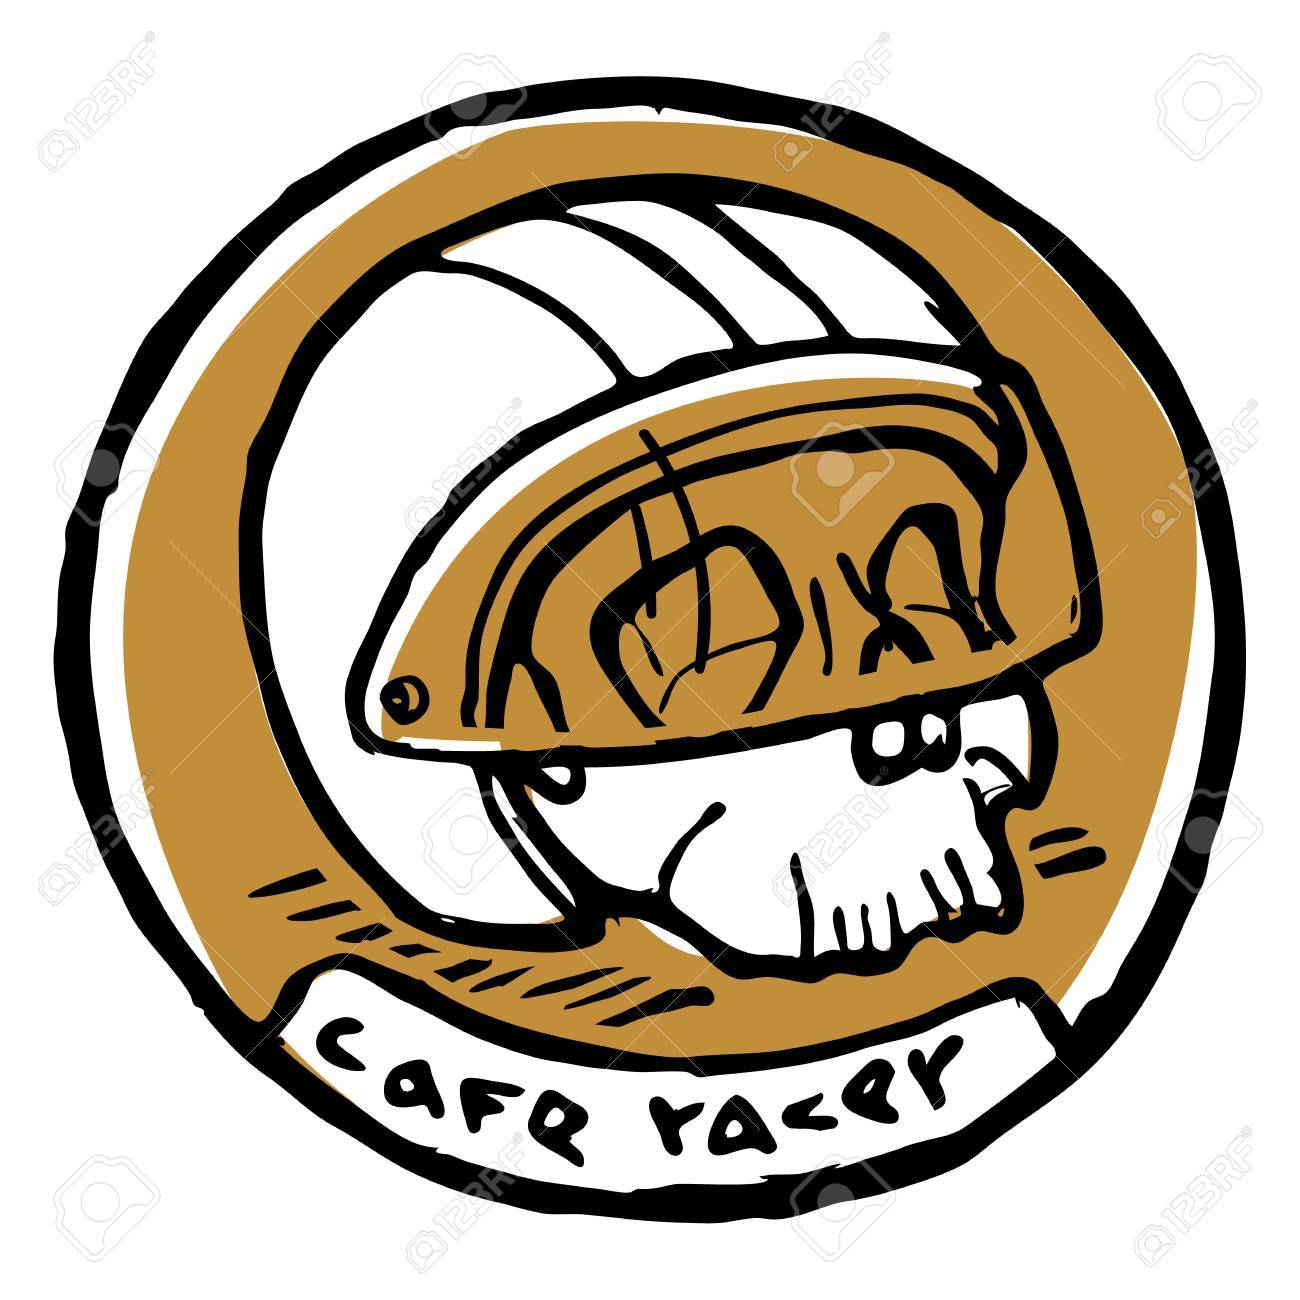 Round Emblem Or Sticker Scull In Bike Helmet At Half Turn Cafe Racer